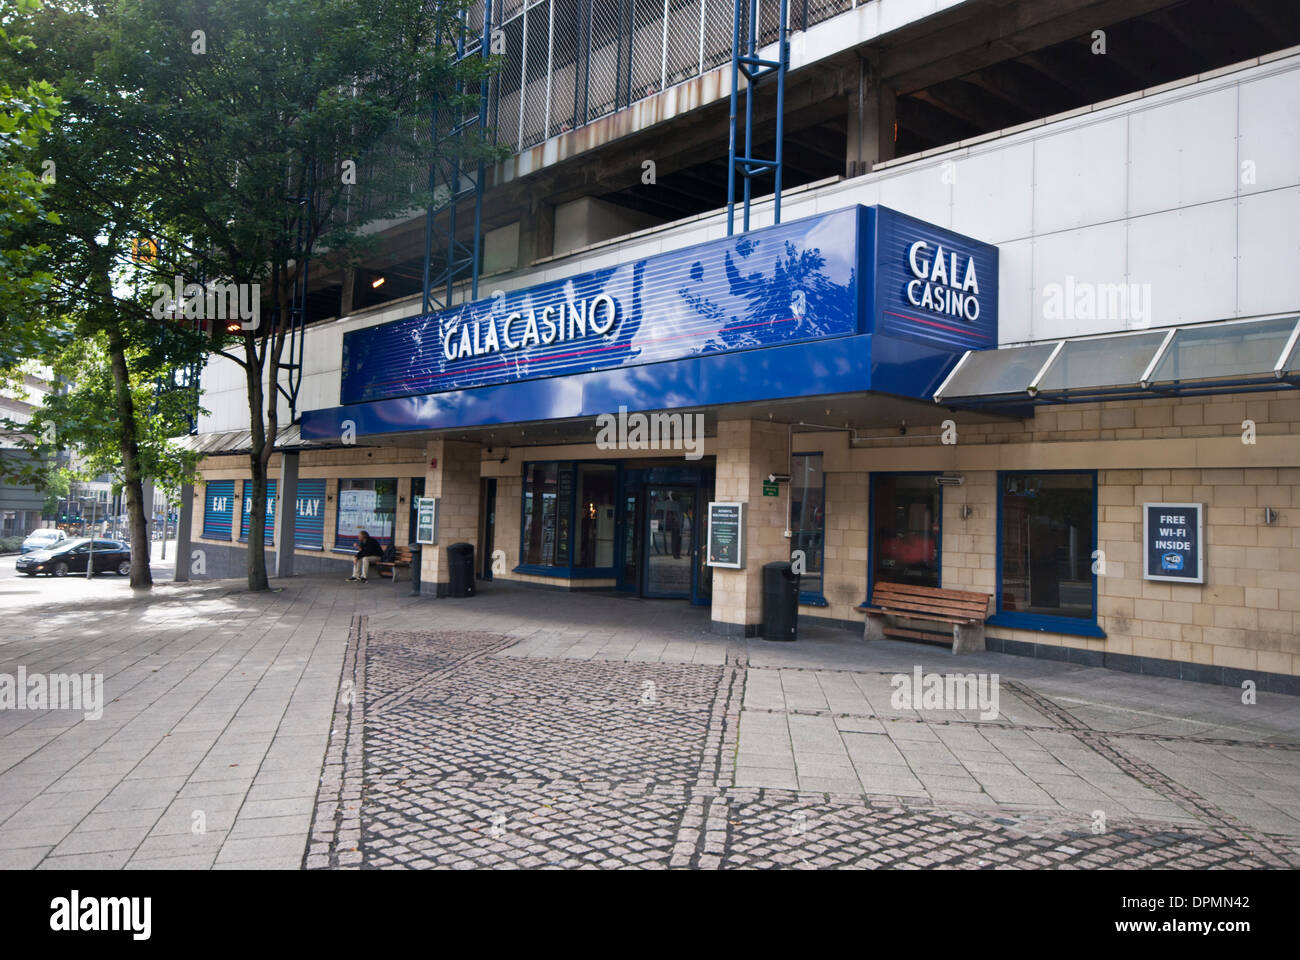 Gala casino nottingham information on complusive gambling